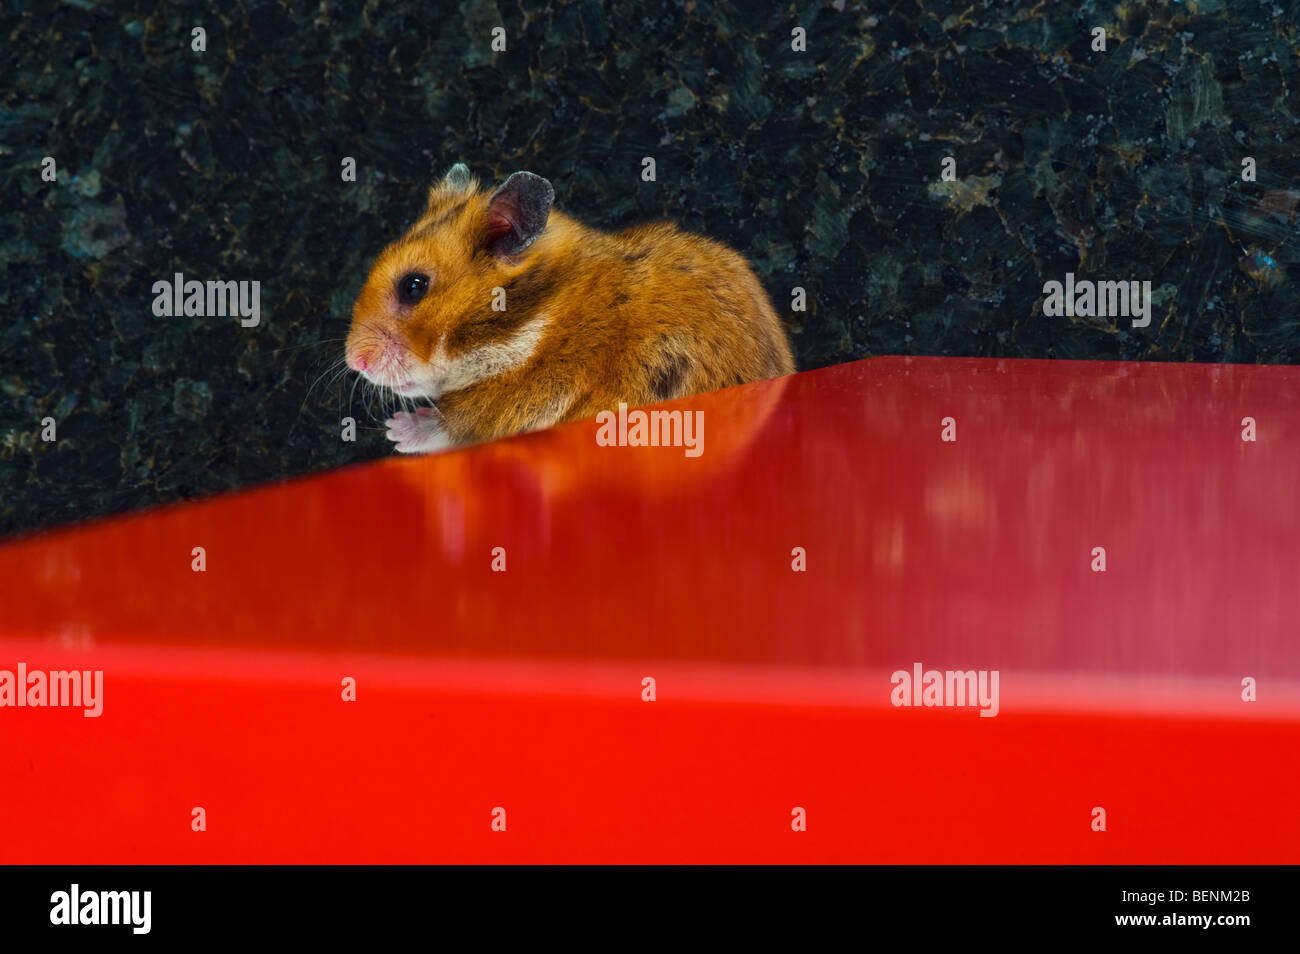 brown Hamster on red background love lovely cute funny animal fun goldhamster stand standing look looking plain - Stock Image